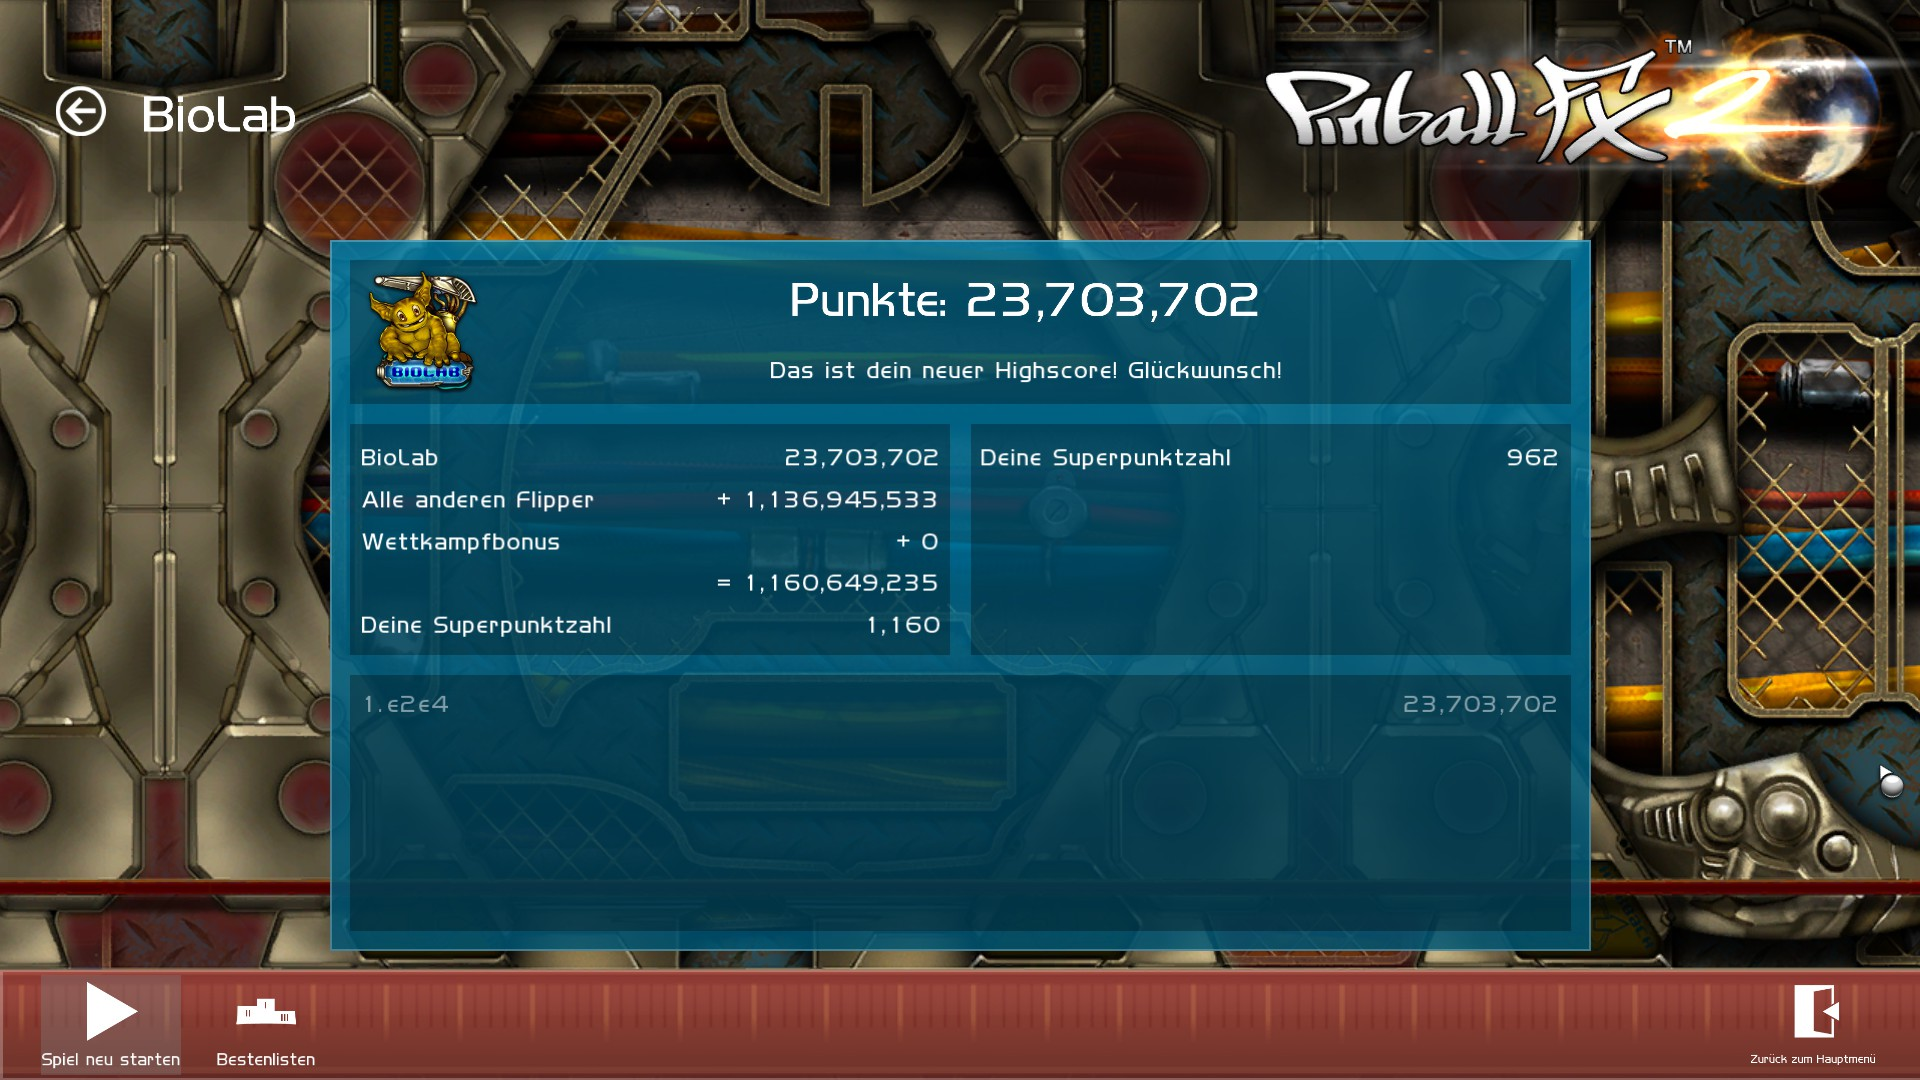 Pinball FX 2: Biolab 23,703,702 points